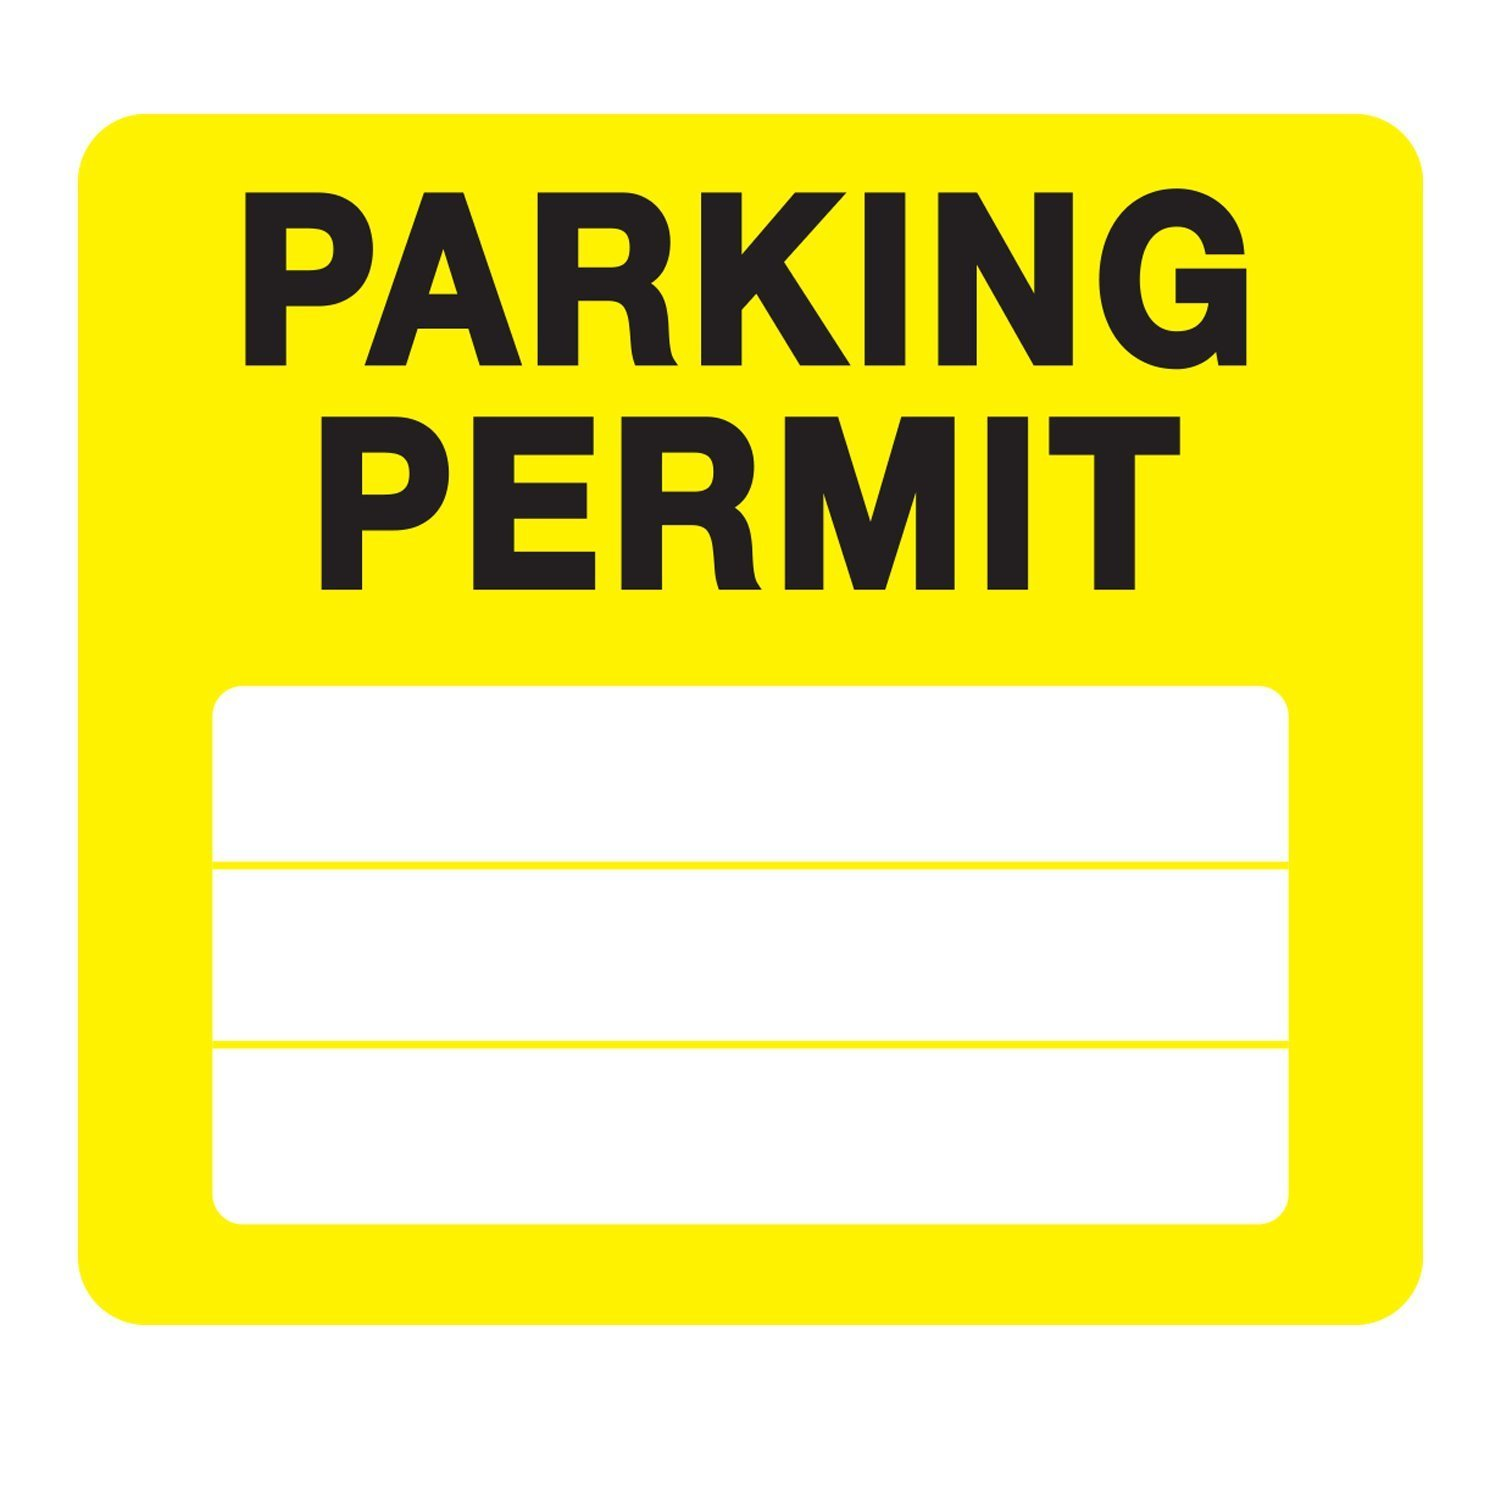 Tenants Office Businesses Students Apartments 10 Pack Parking Permit Pass Stock Static Cling Windshield Sticker Non-Adhesive for Employees by Milcoast White